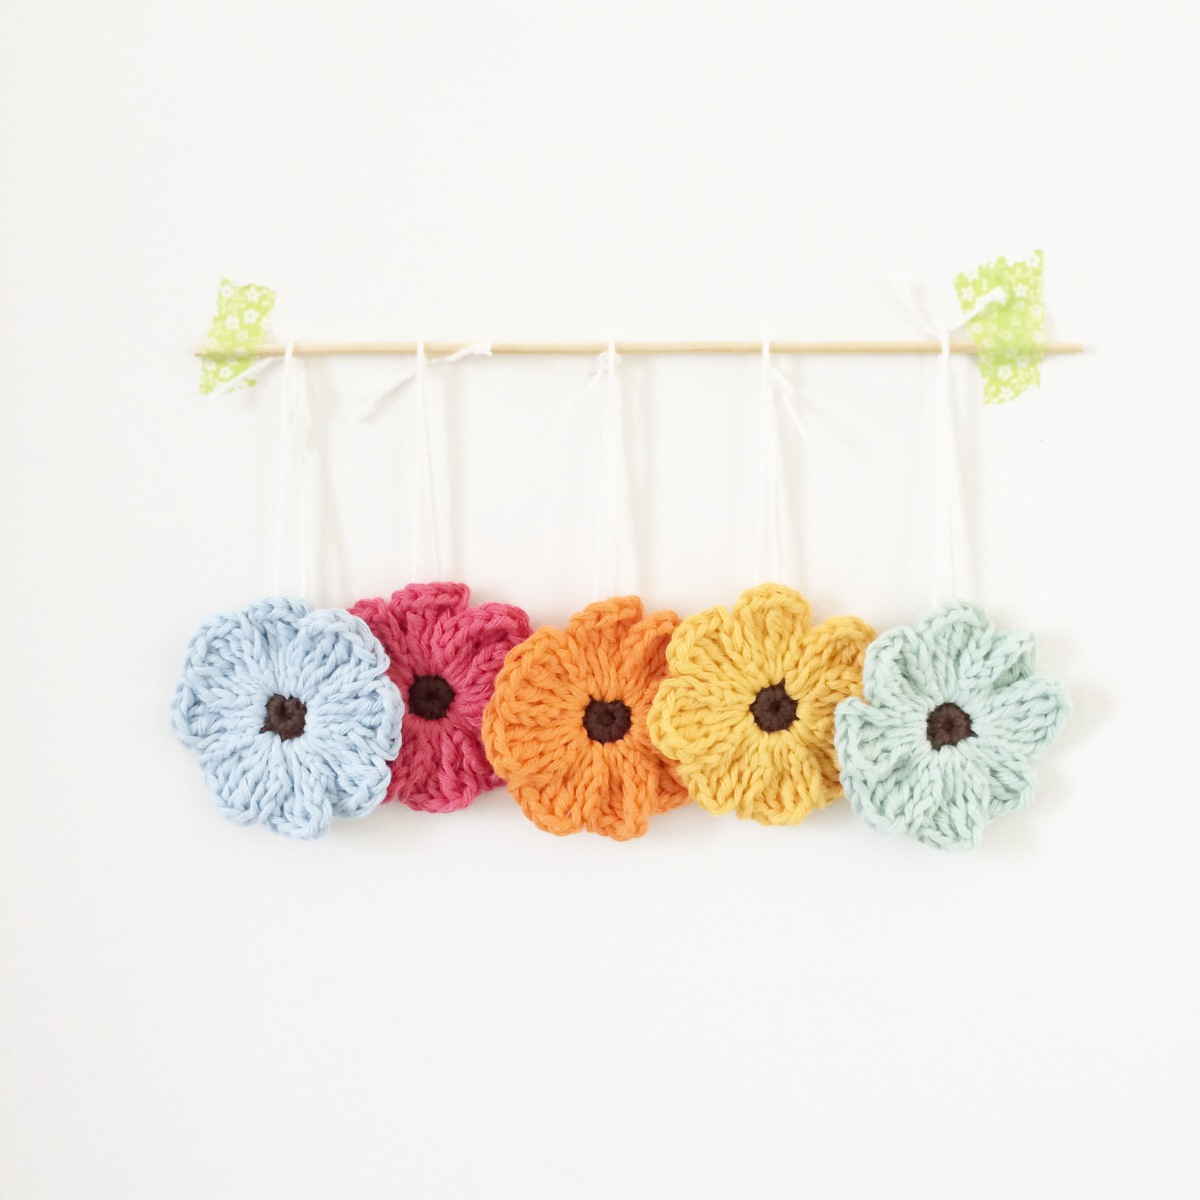 Zoe Crochet Flower Pattern And Tutorial Knitpurlhook It With Flowers S Found A Few Patterns